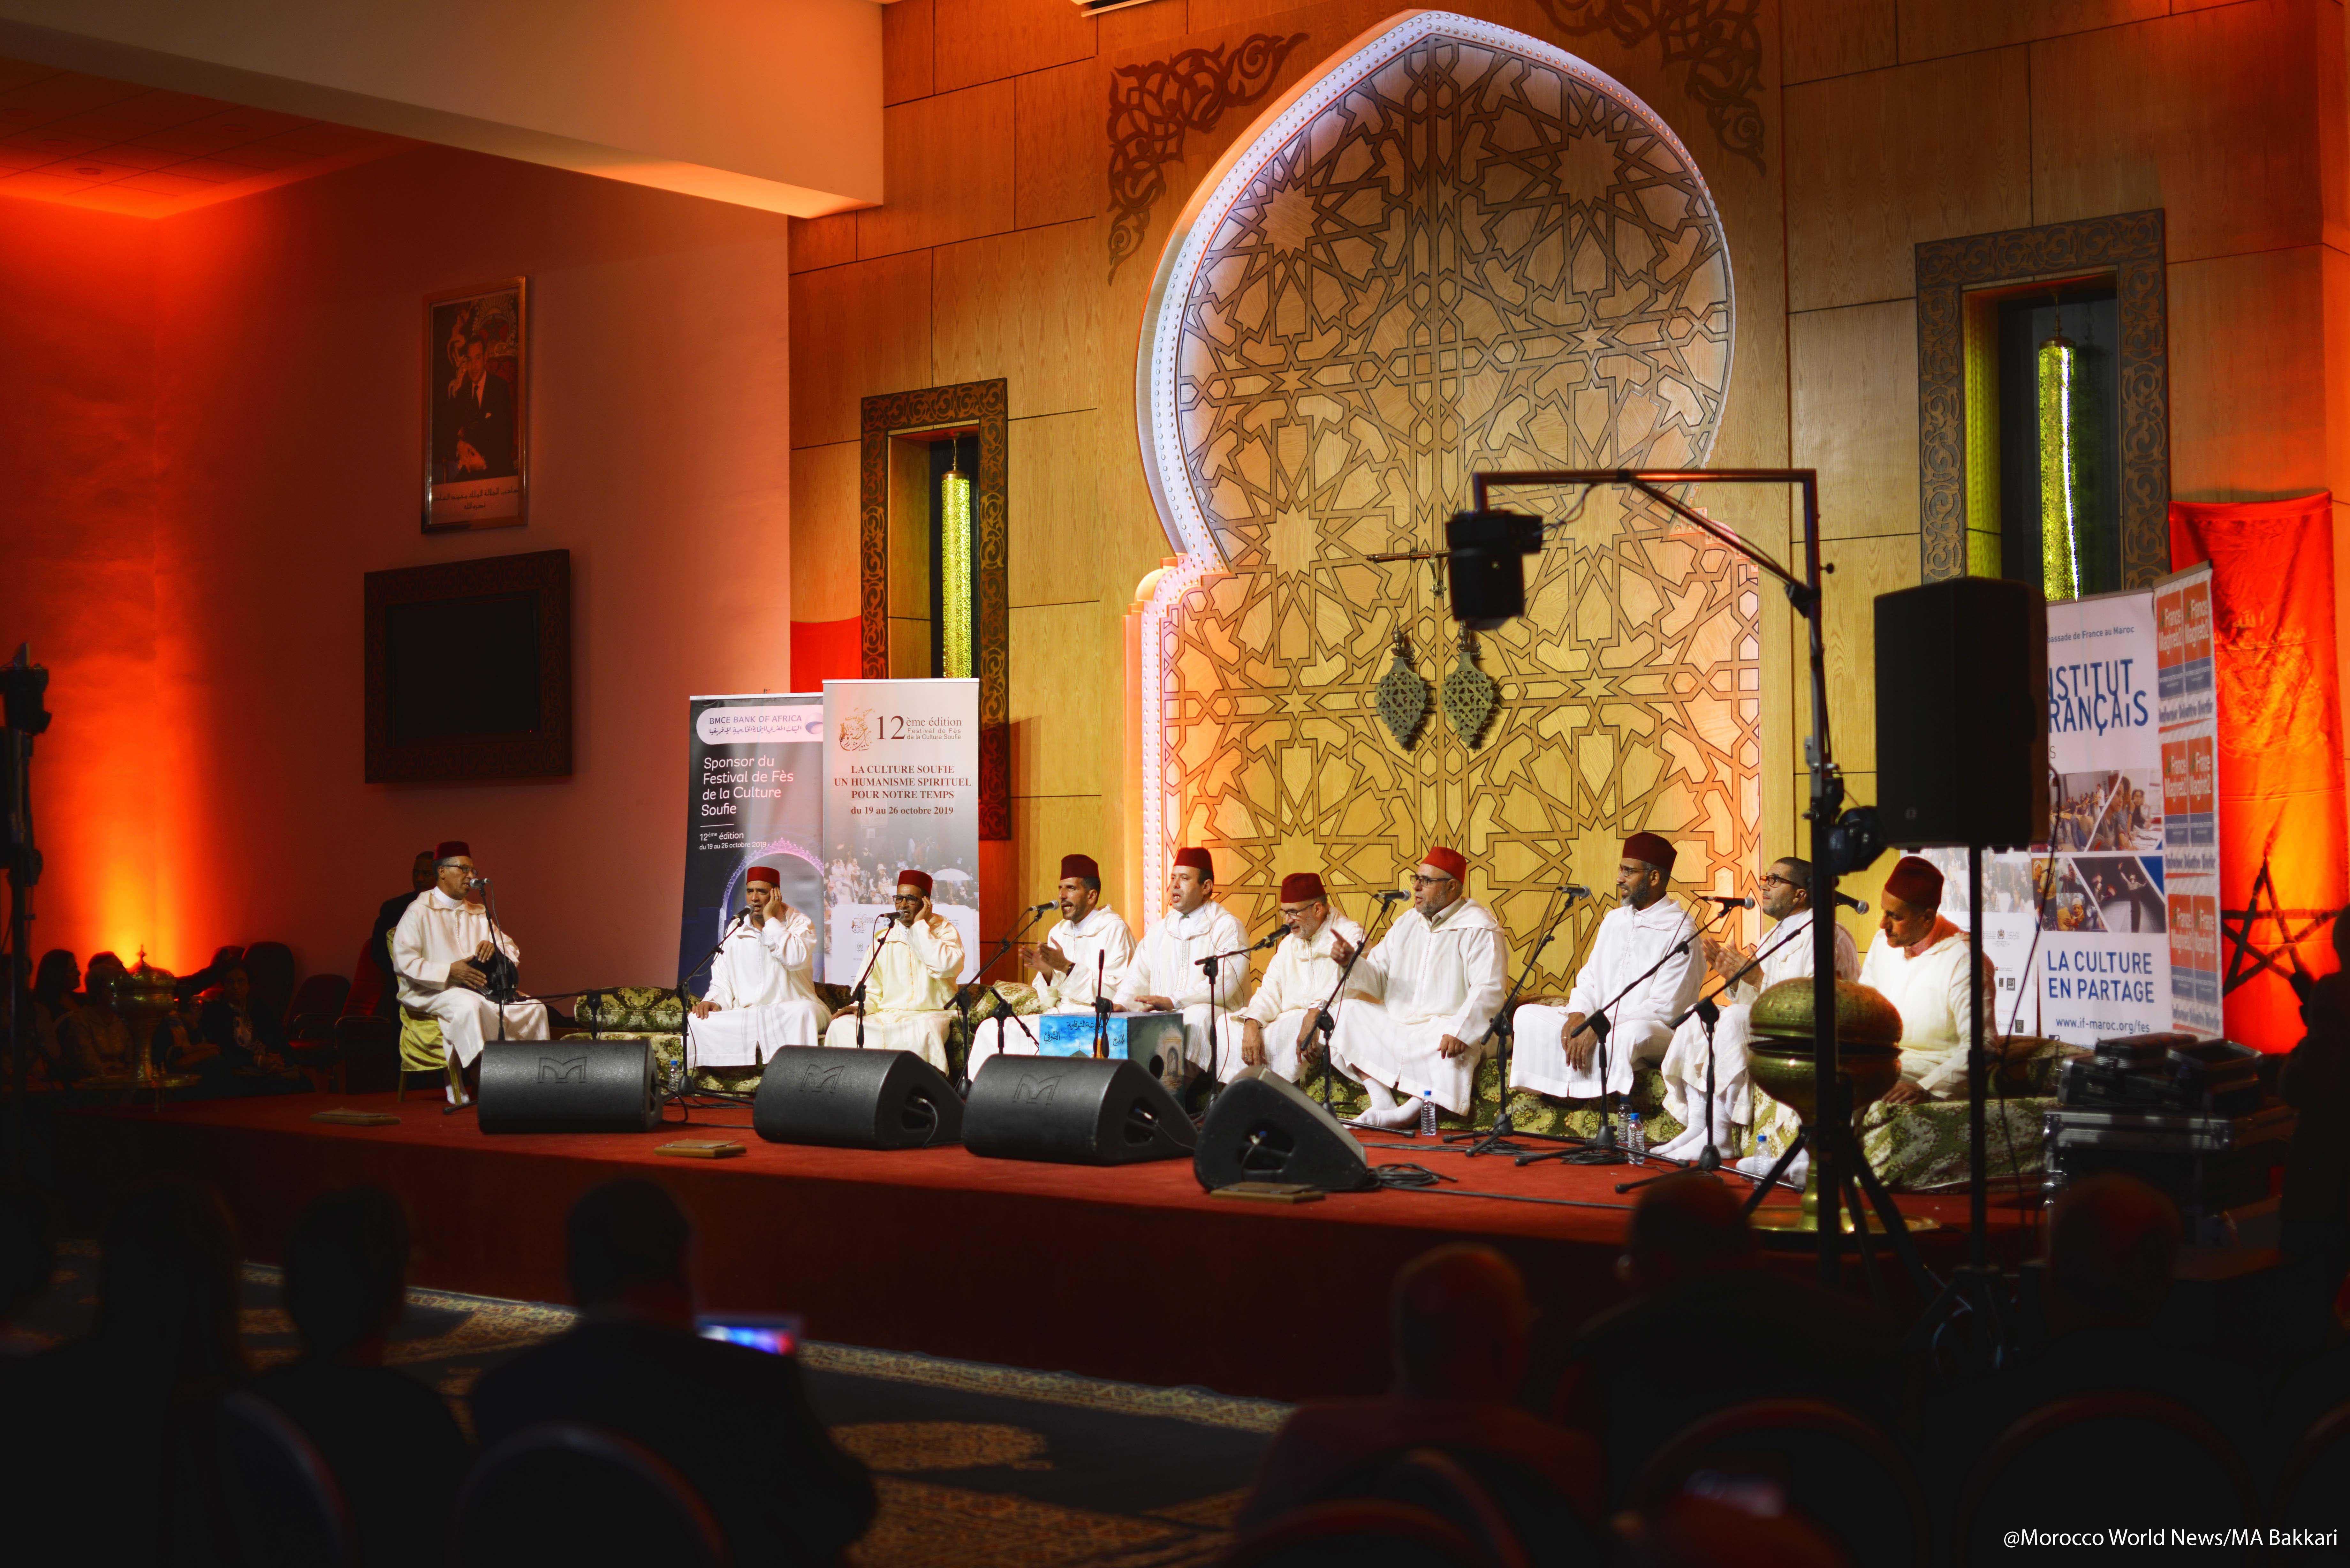 Sufi music group Tariqa Sharqawiya